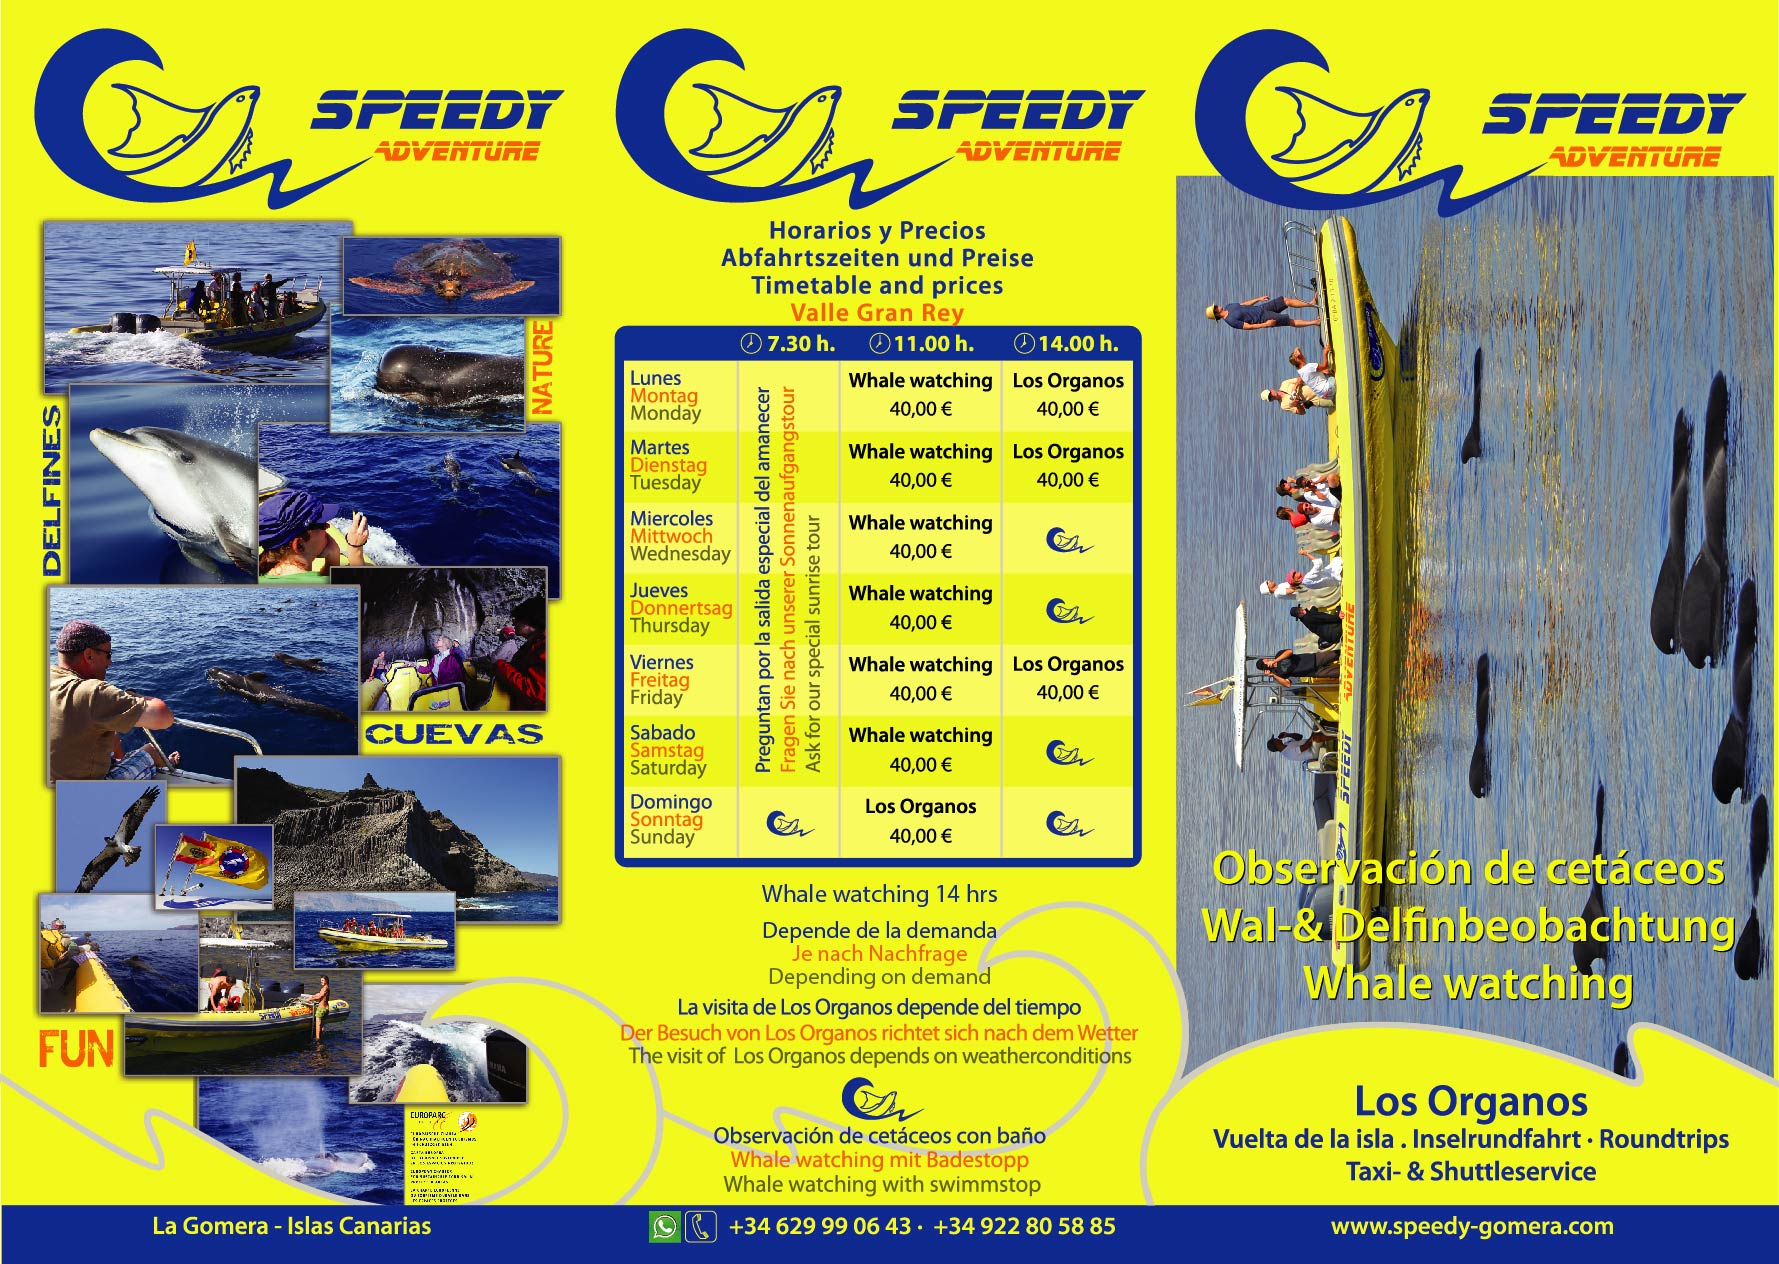 Horario actual: Speedy Adventure, La Gomera